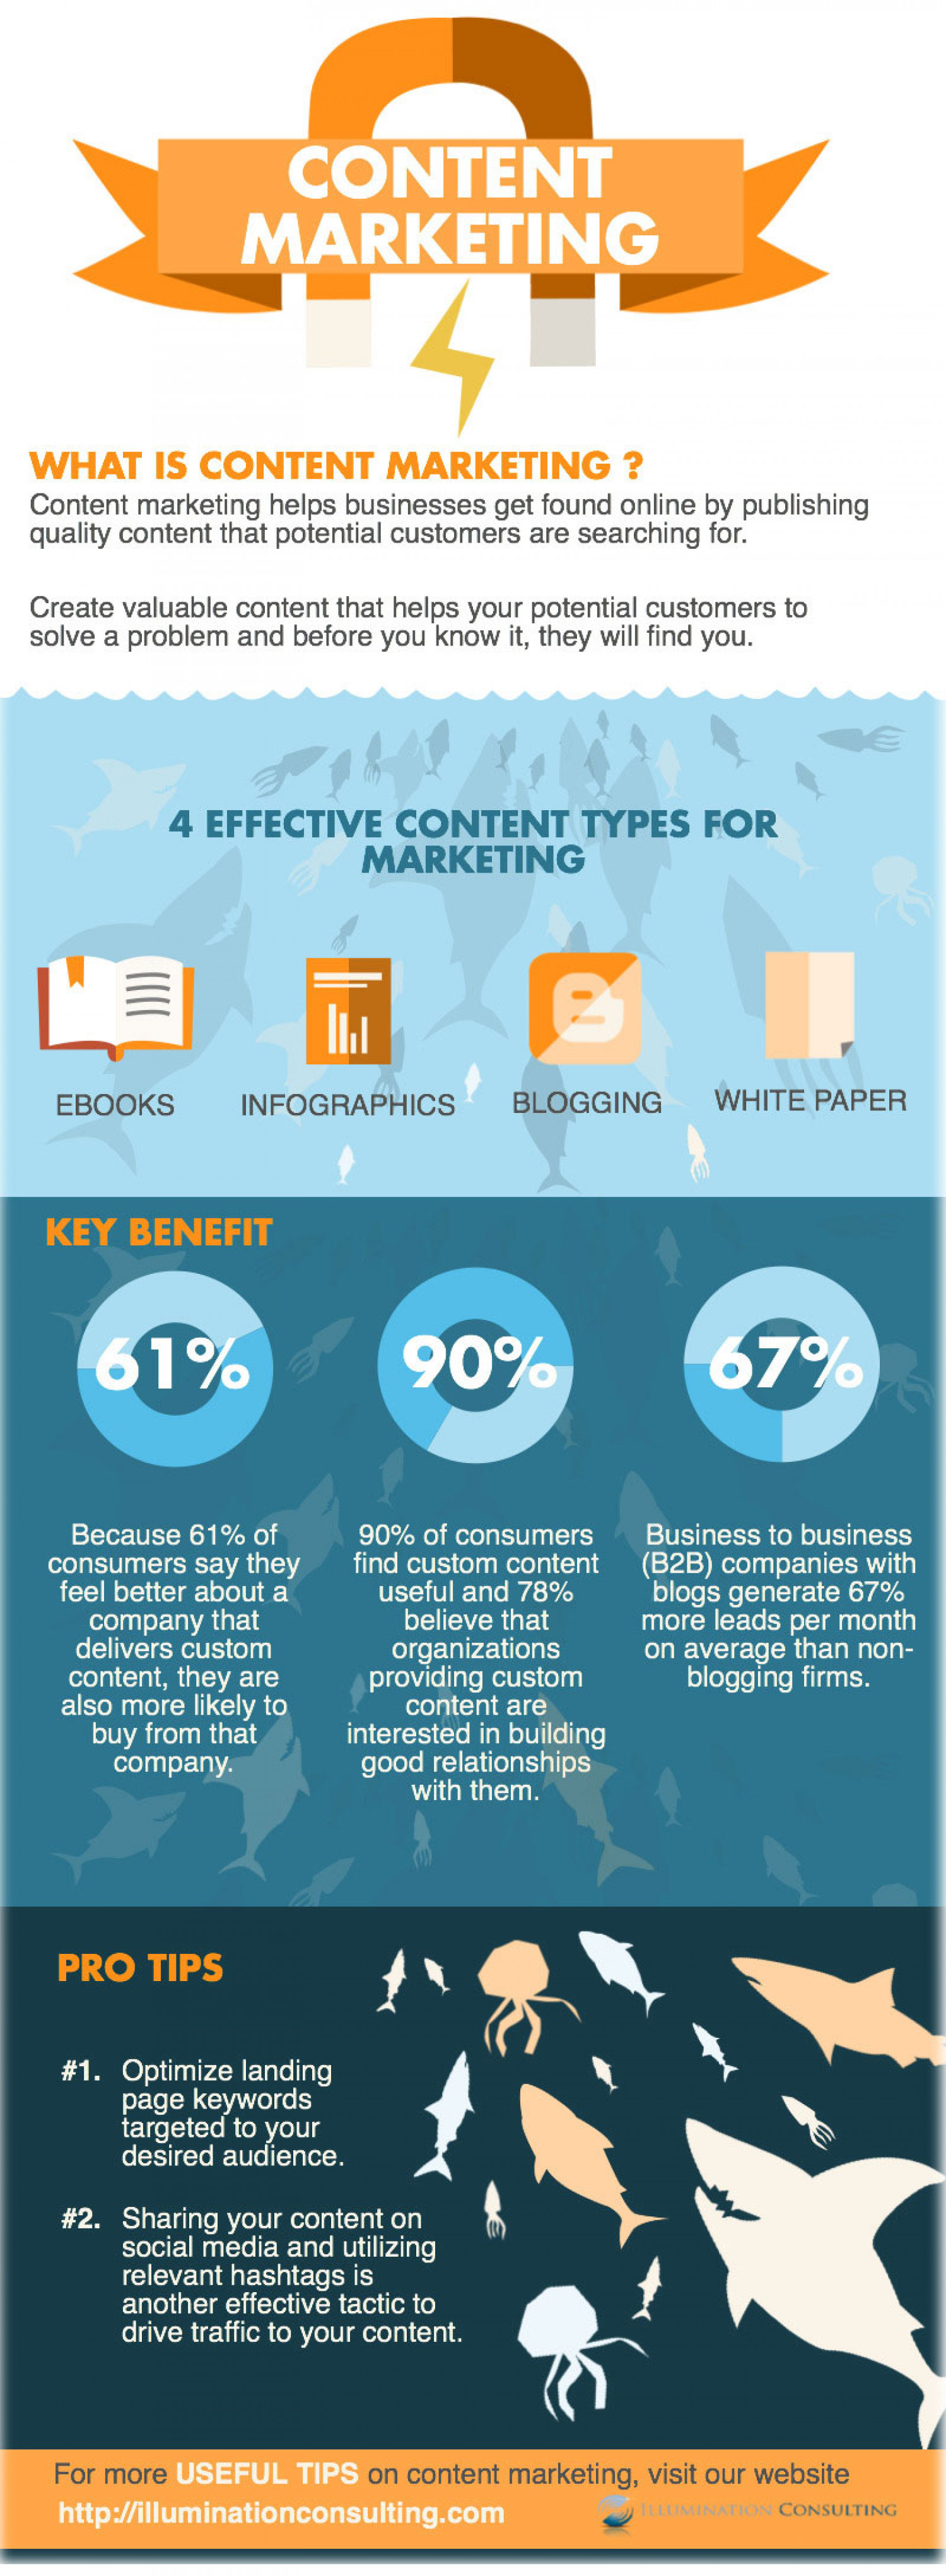 Content Marketing Types And Benefits By Illumination Consulting Infographic